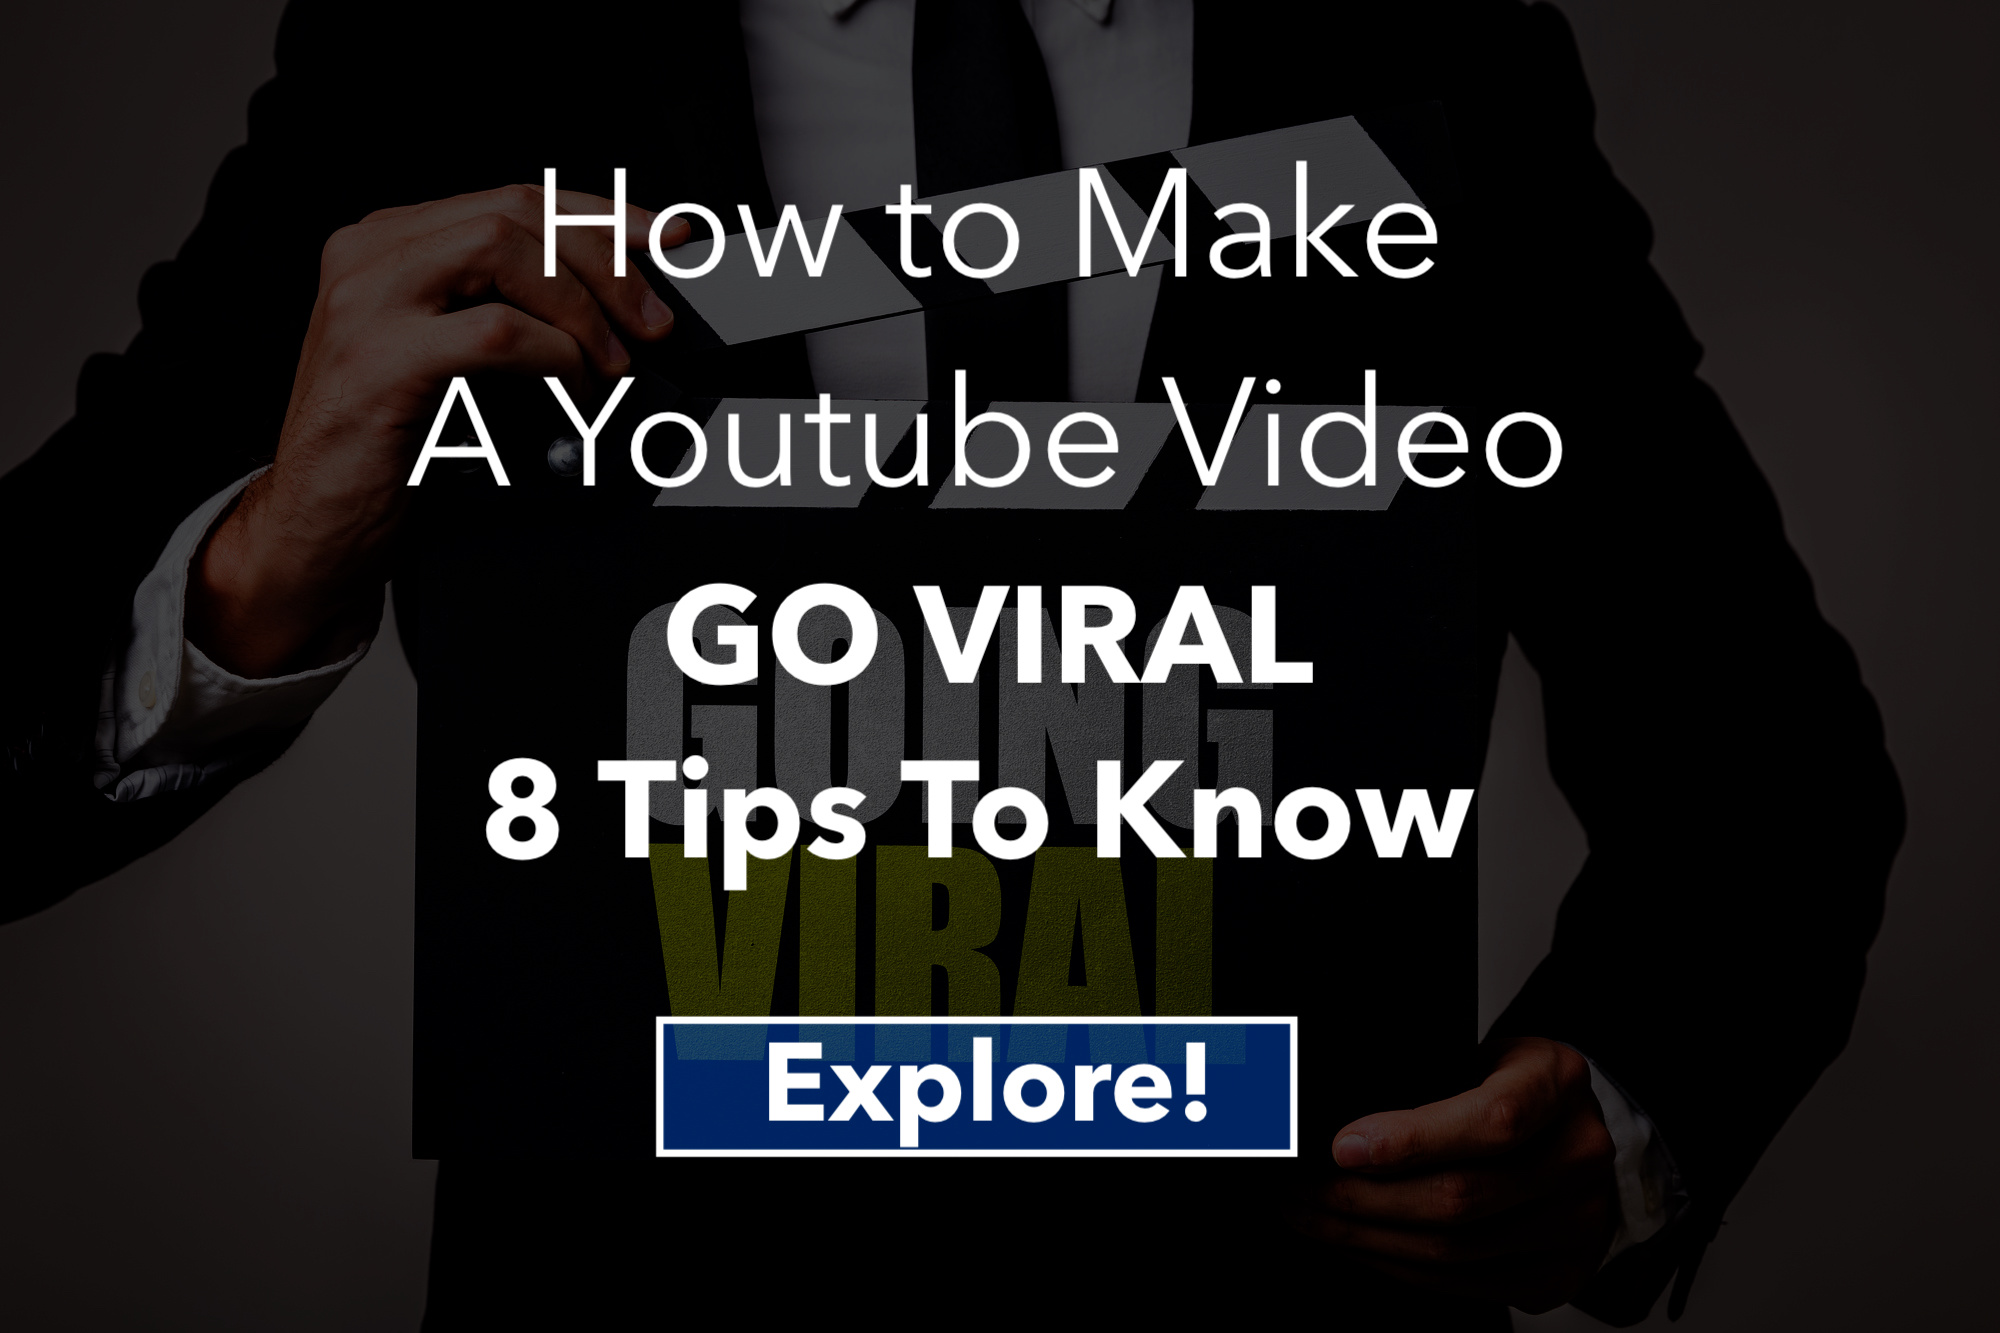 How to Make A Youtube Video Go Viral